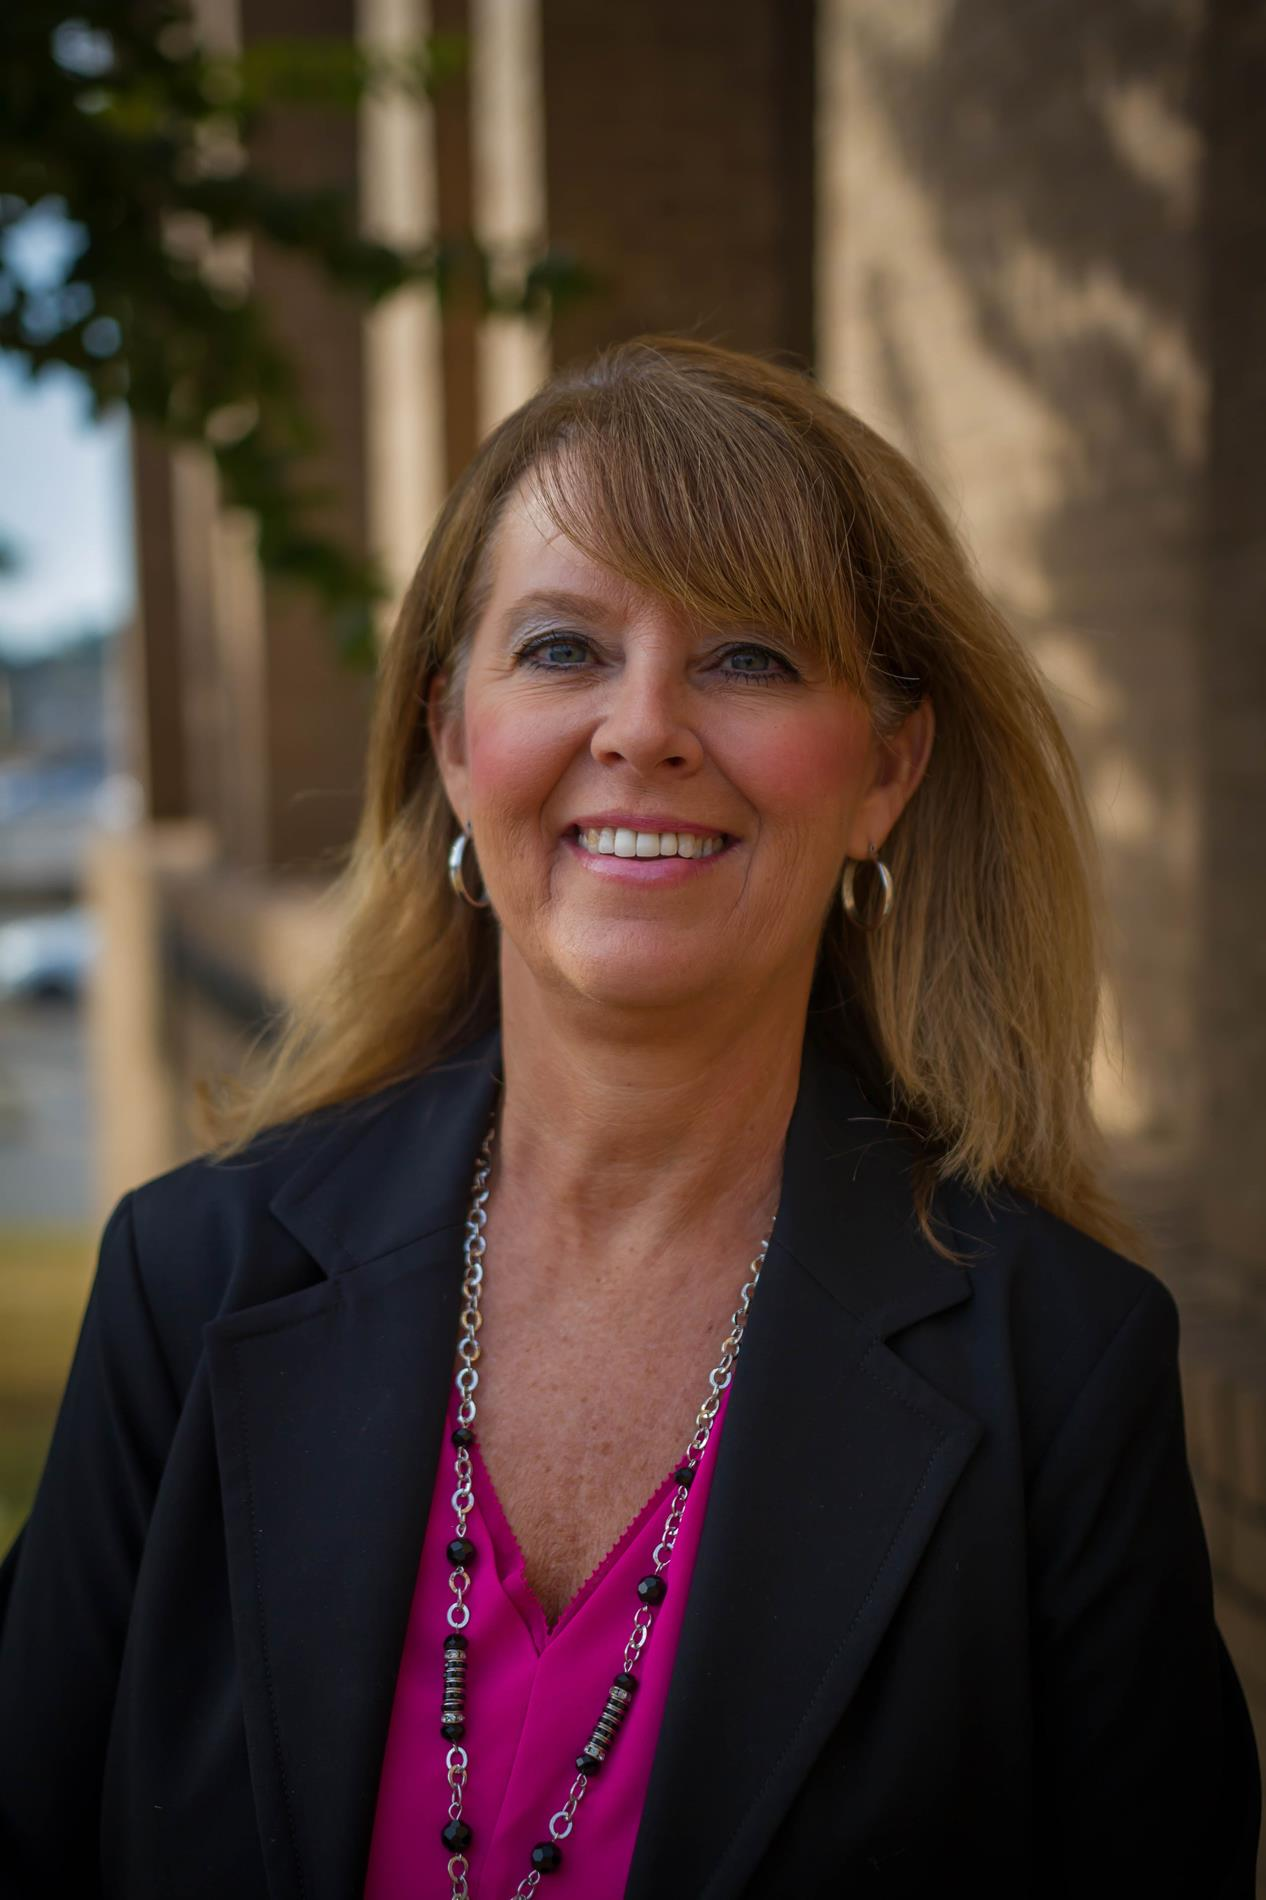 Gina Schrimsher, Secretary to Executive Director of Human Resources